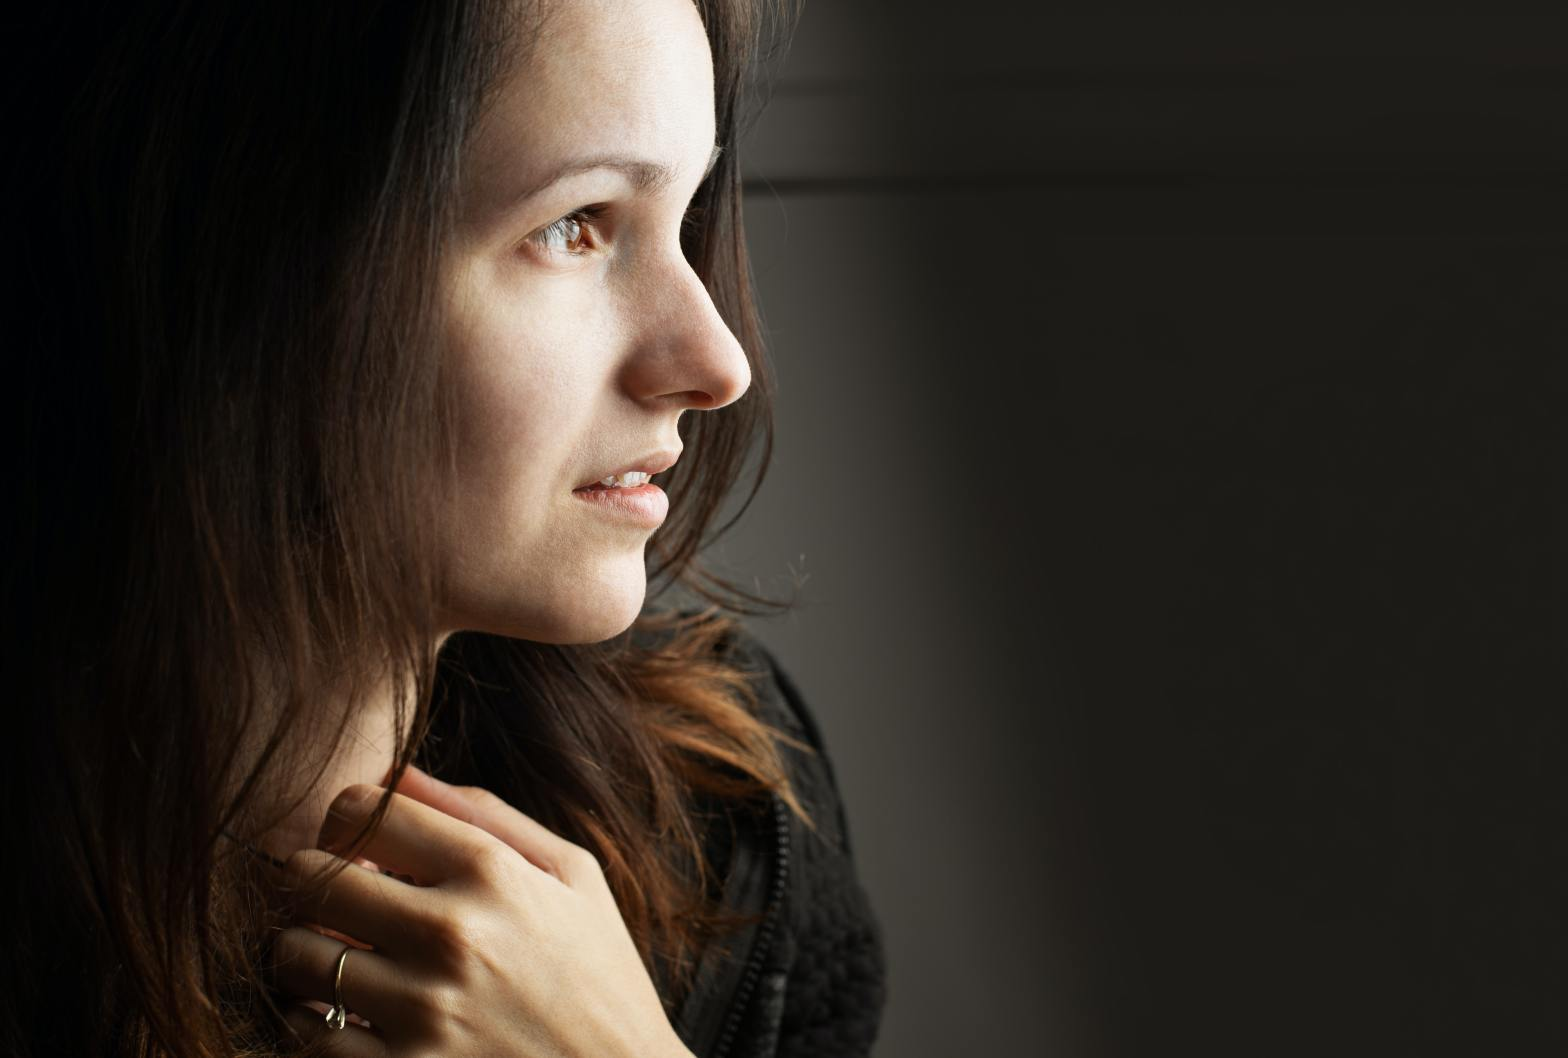 Woman looking apprehensive–when relationships don't feel safe